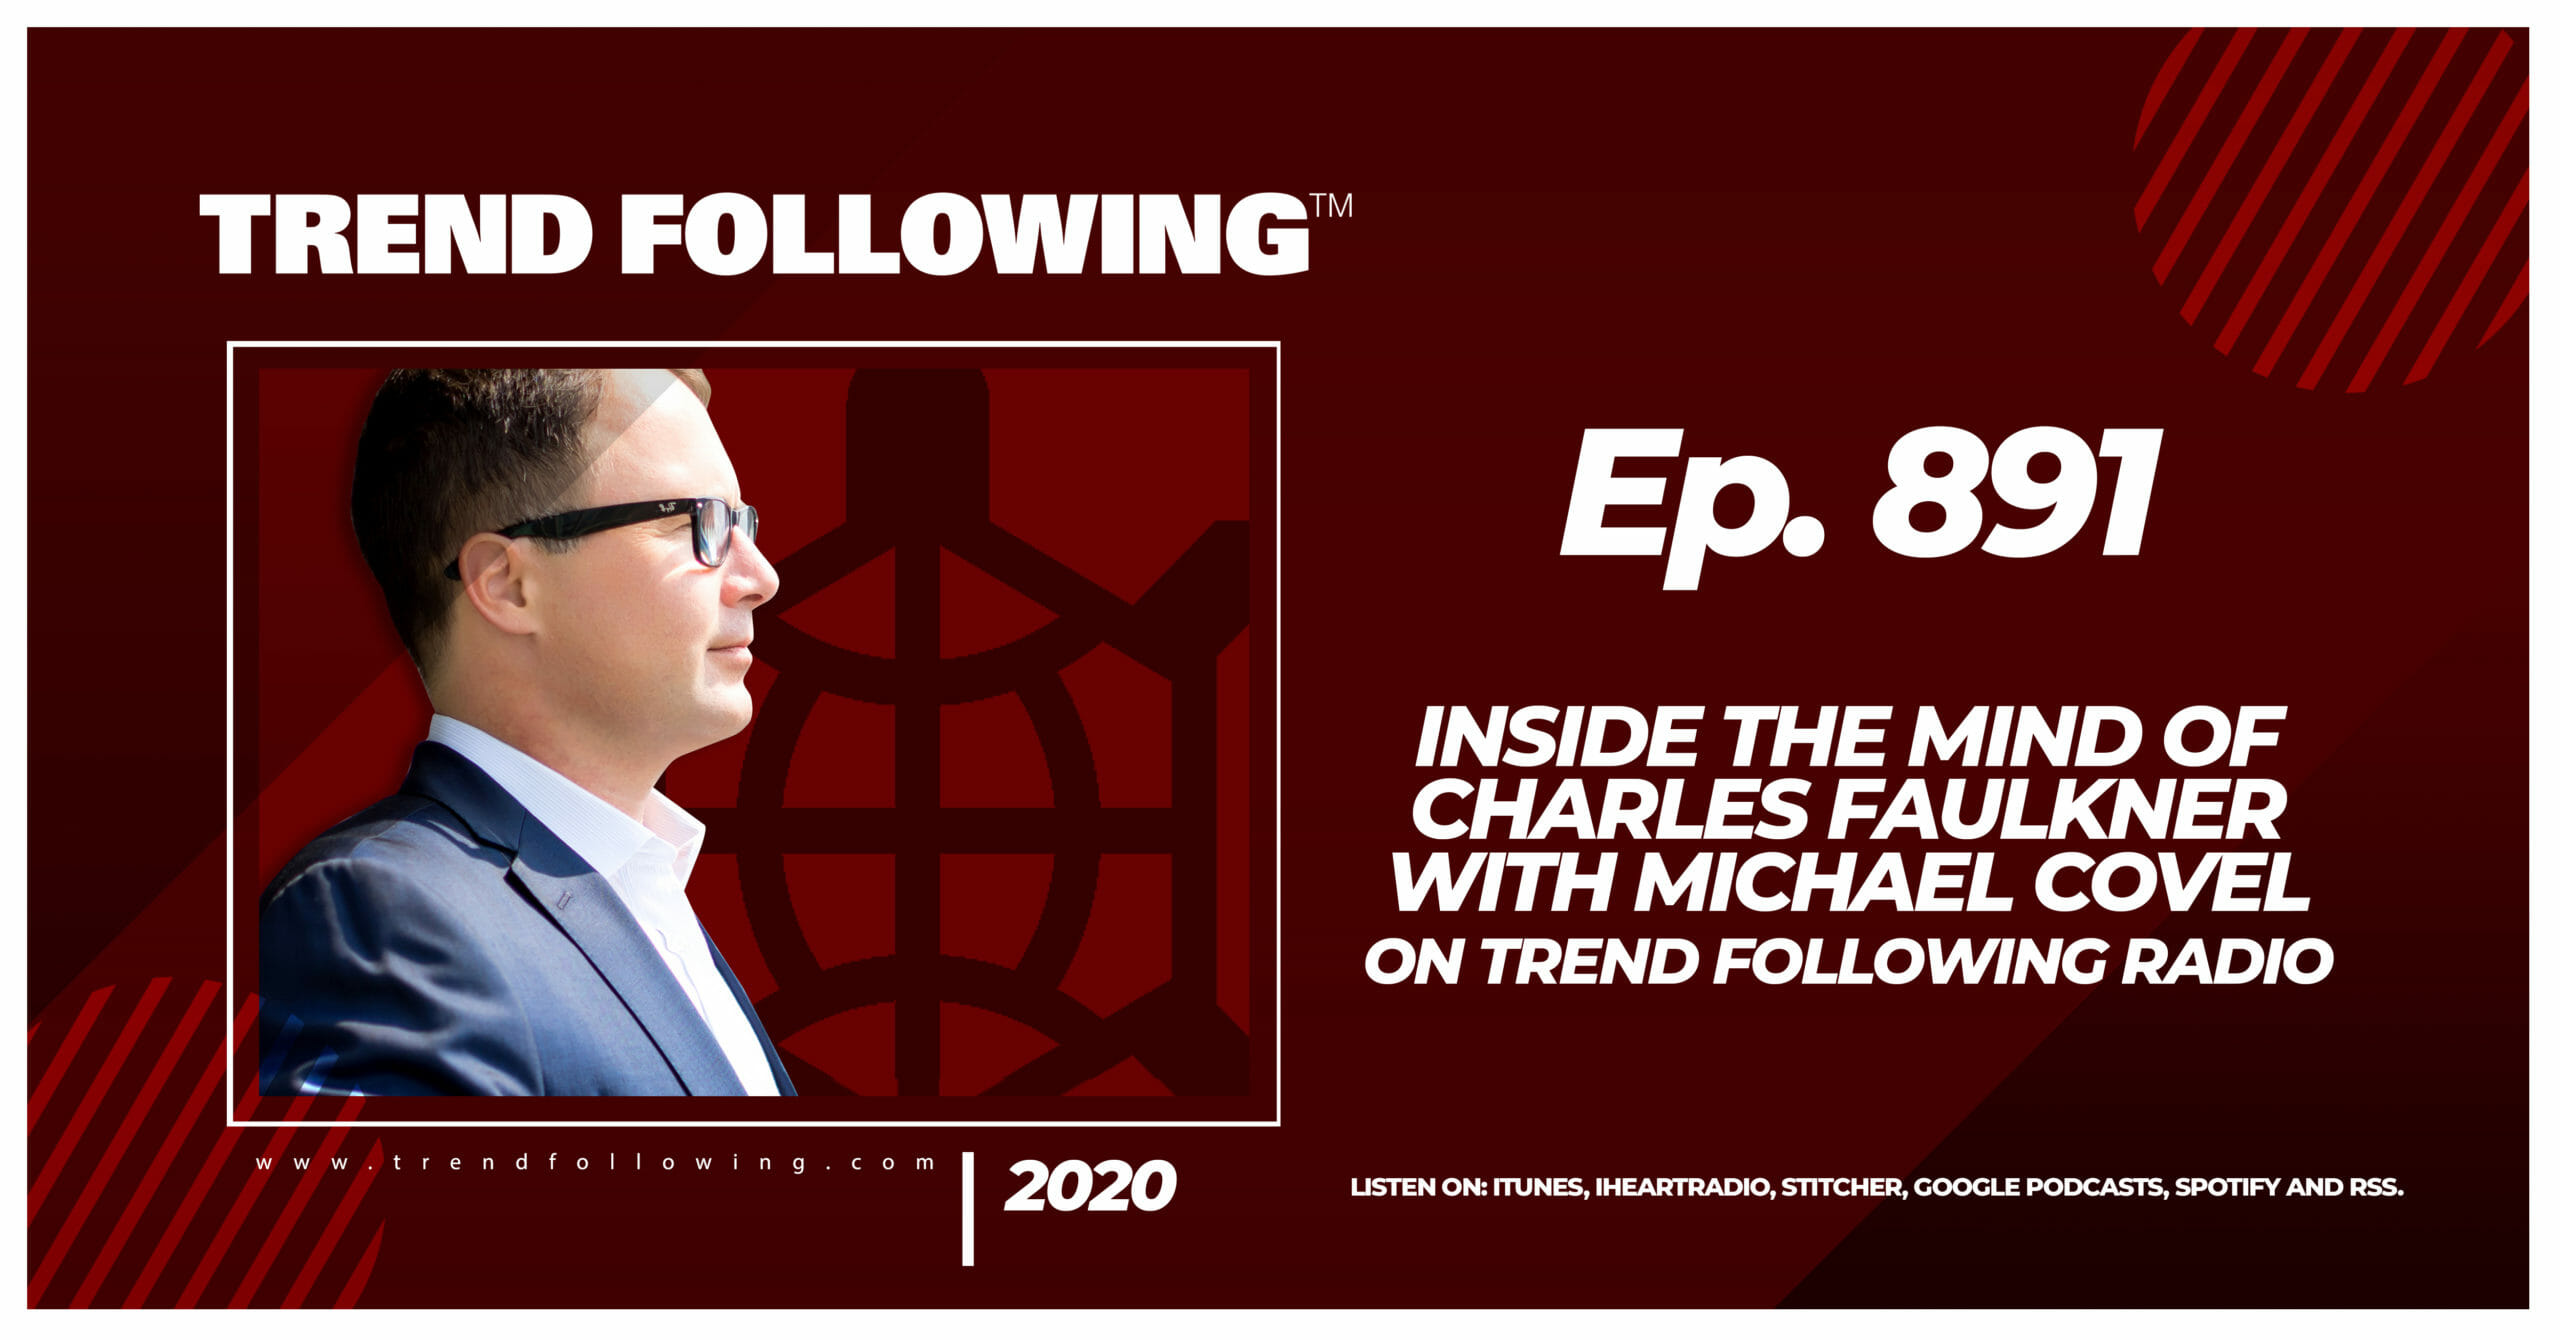 Ep. 891: Inside the Mind of Charles Faulkner with Michael Covel on Trend Following Radio